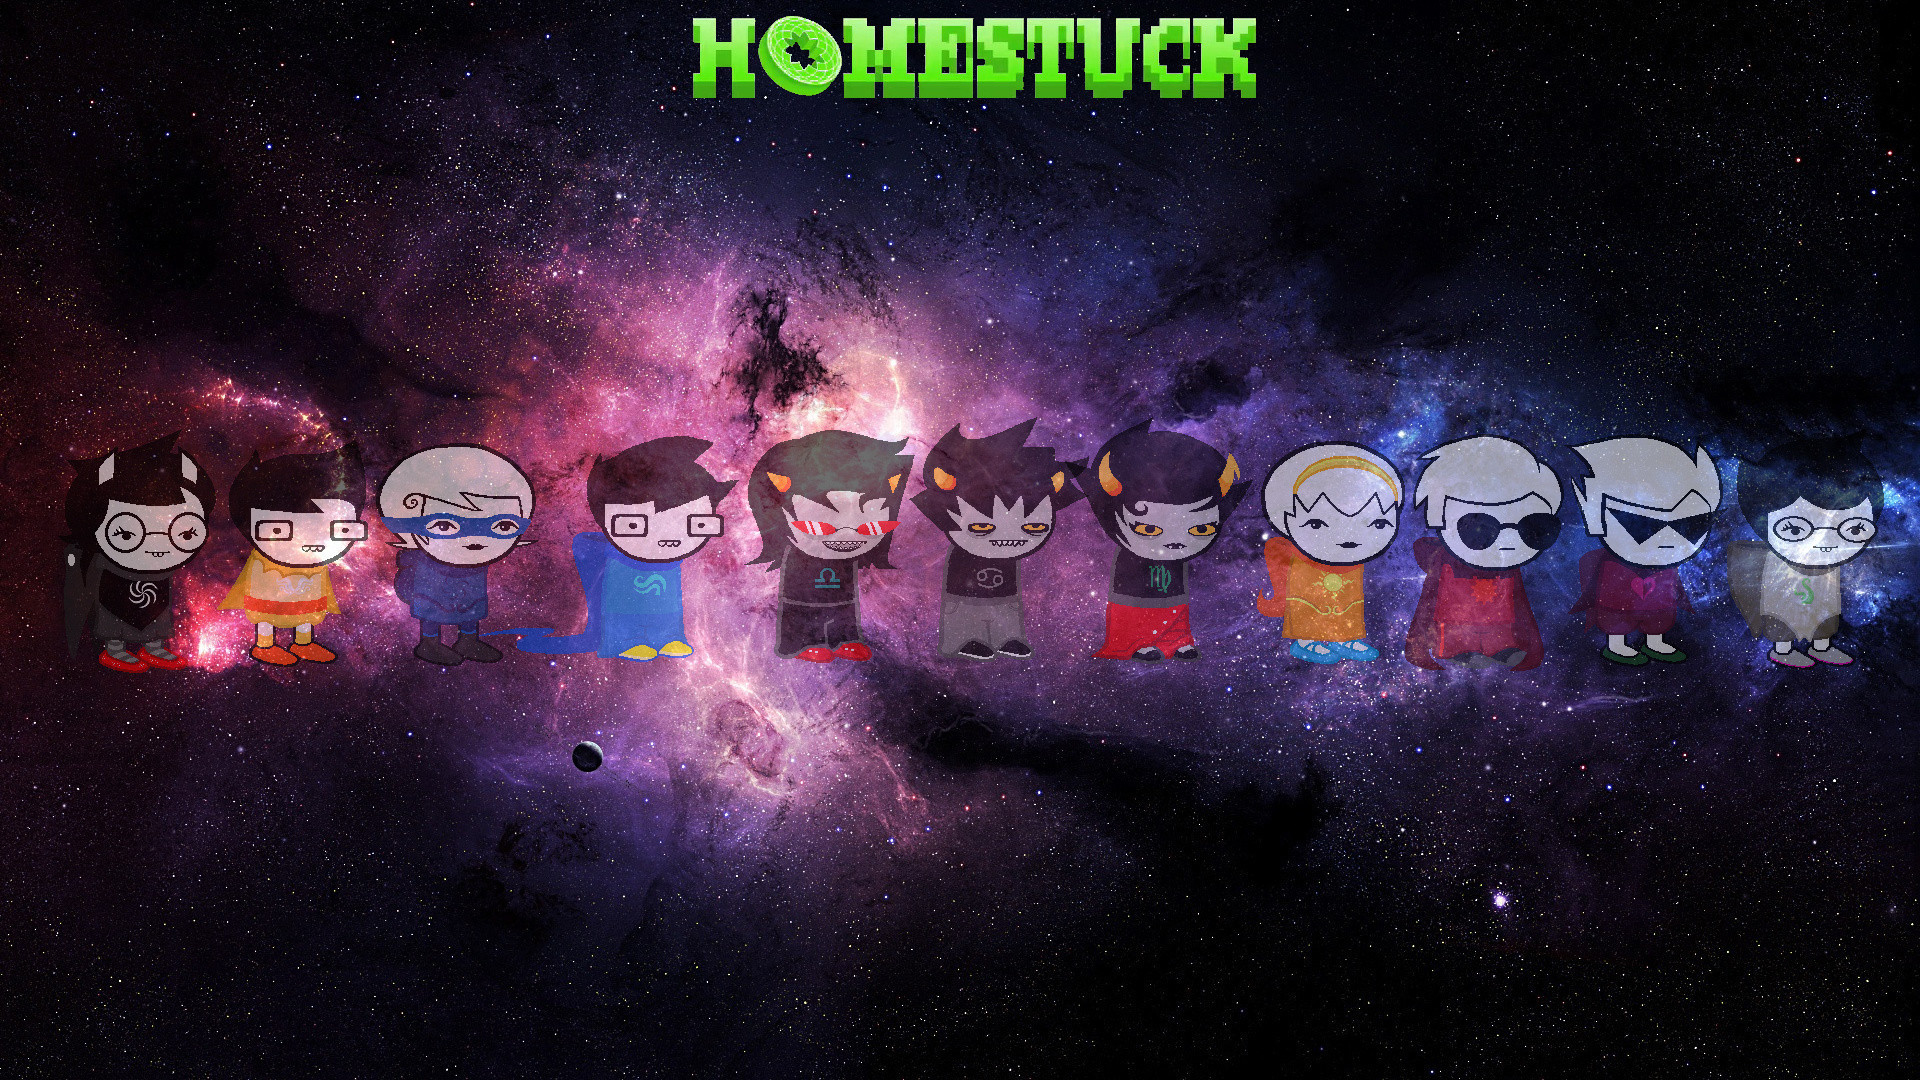 Homestuck Wallpaper that I made for you guys enjoy! [1920×1080] Need #iPhone